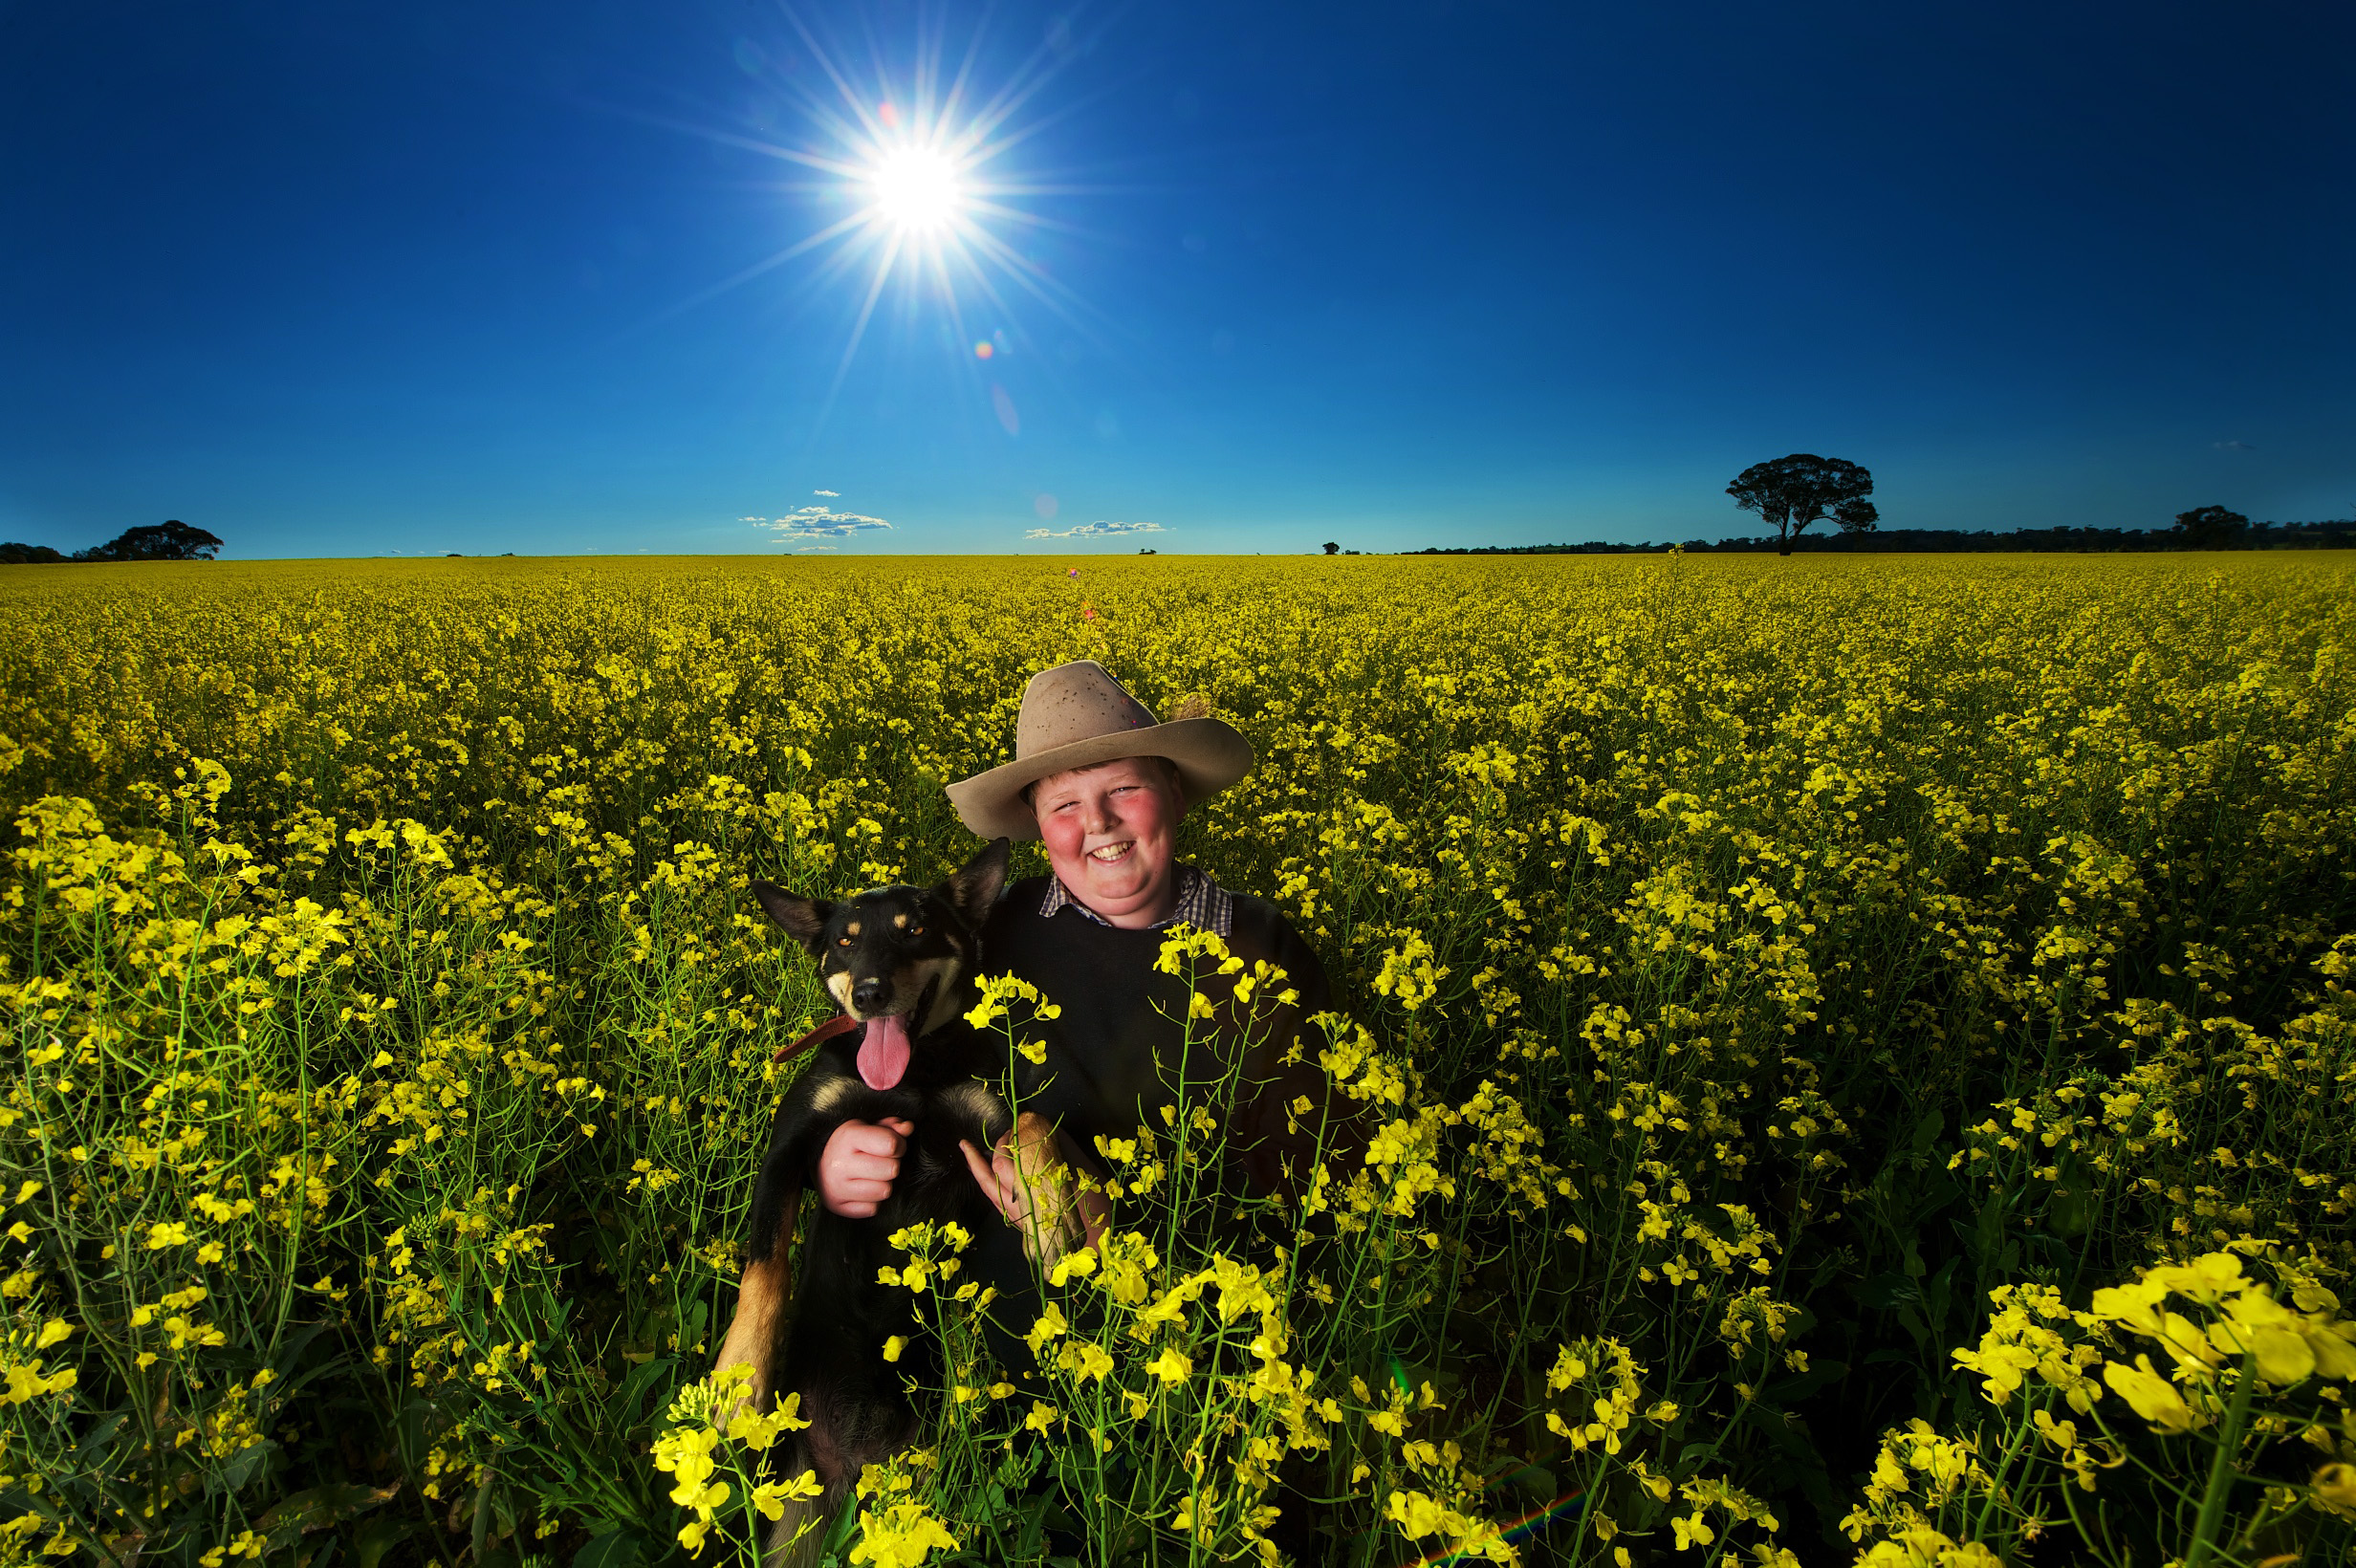 CHP_Export_91422582_HS25 We%27re for Victoria Tom Punton 13 with Zoe in  canola fields on his fami.jpg